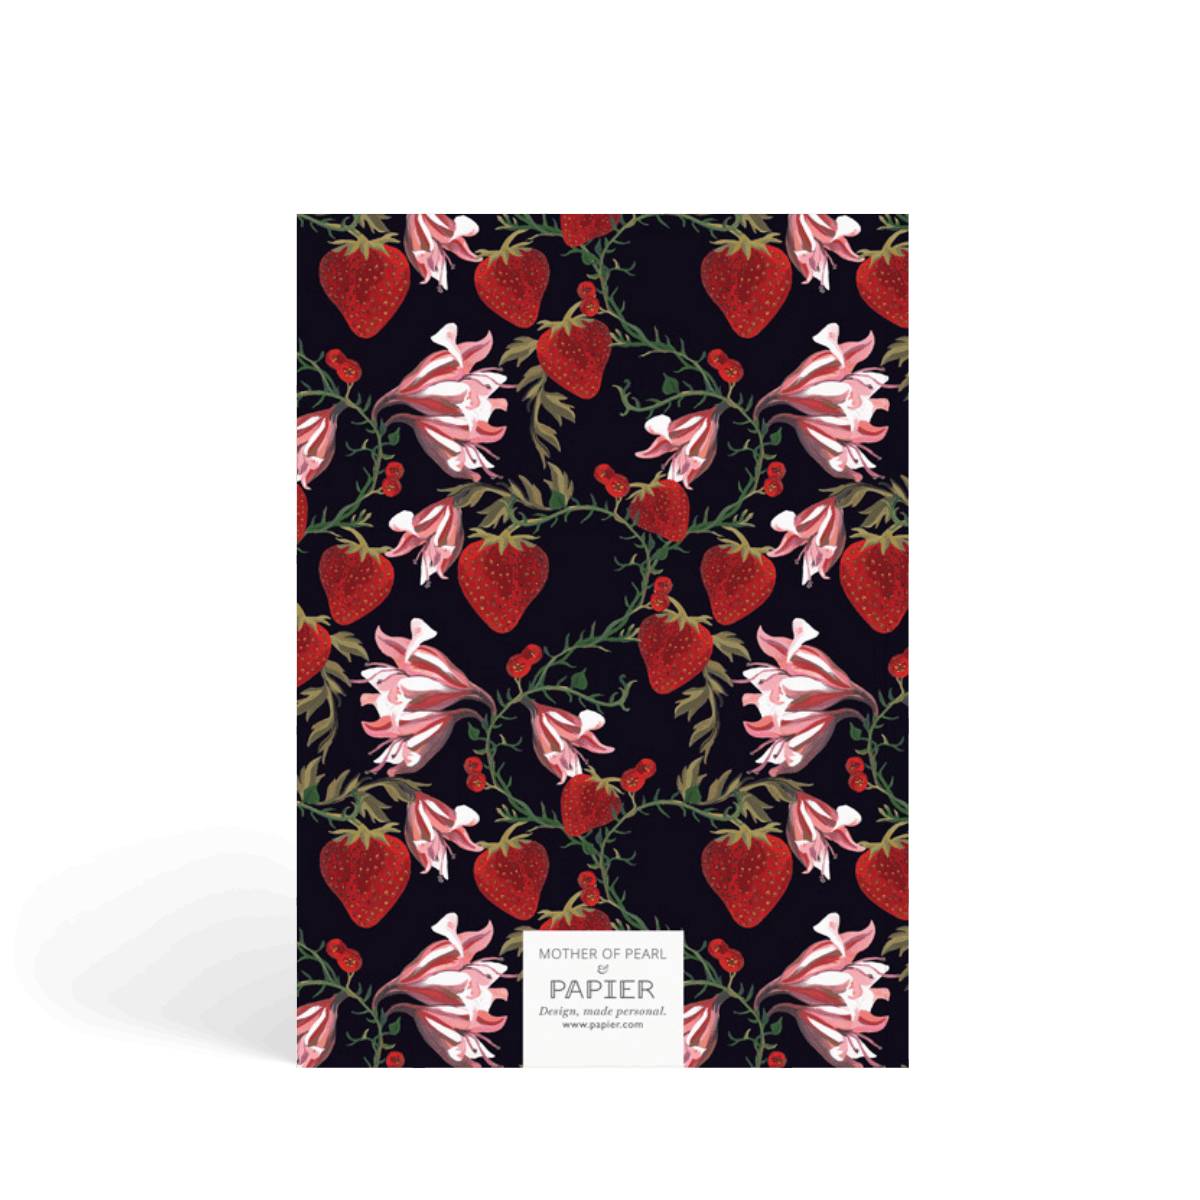 Https%3a%2f%2fwww.papier.com%2fproduct image%2f45308%2f5%2fstrawberry floral 11239 back 1535020488.png?ixlib=rb 1.1